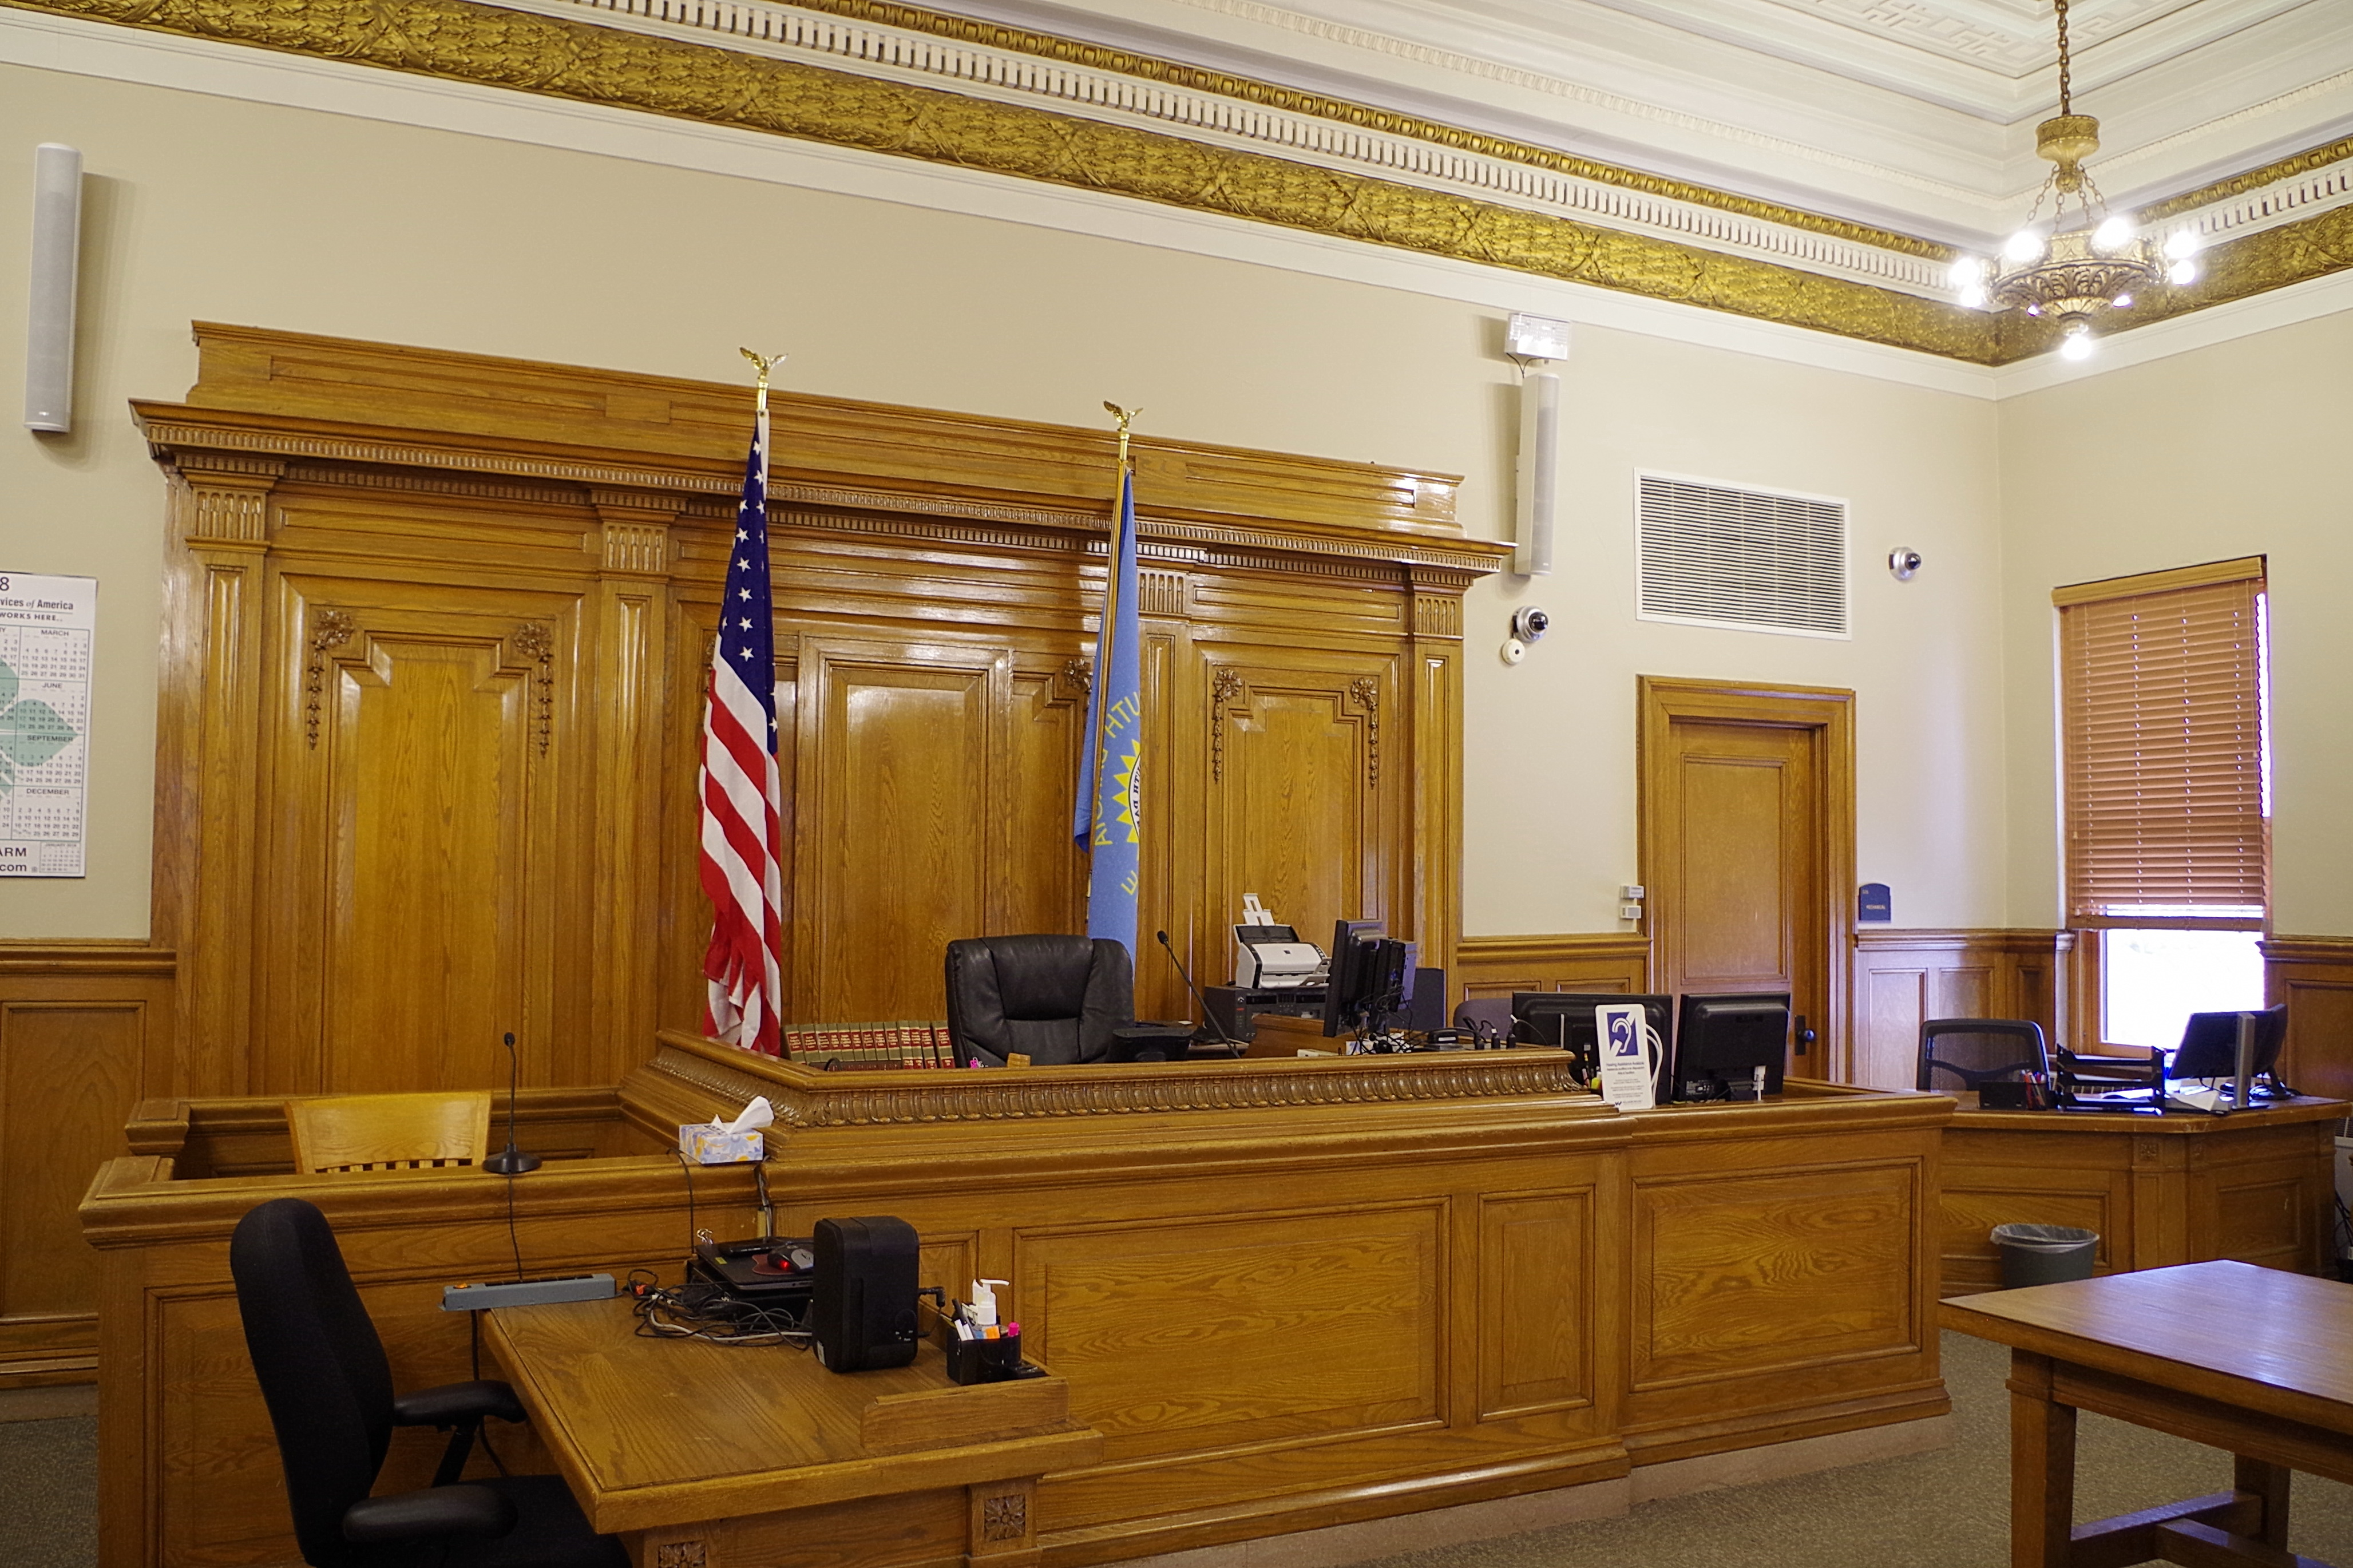 Brookings County Us Courthouses